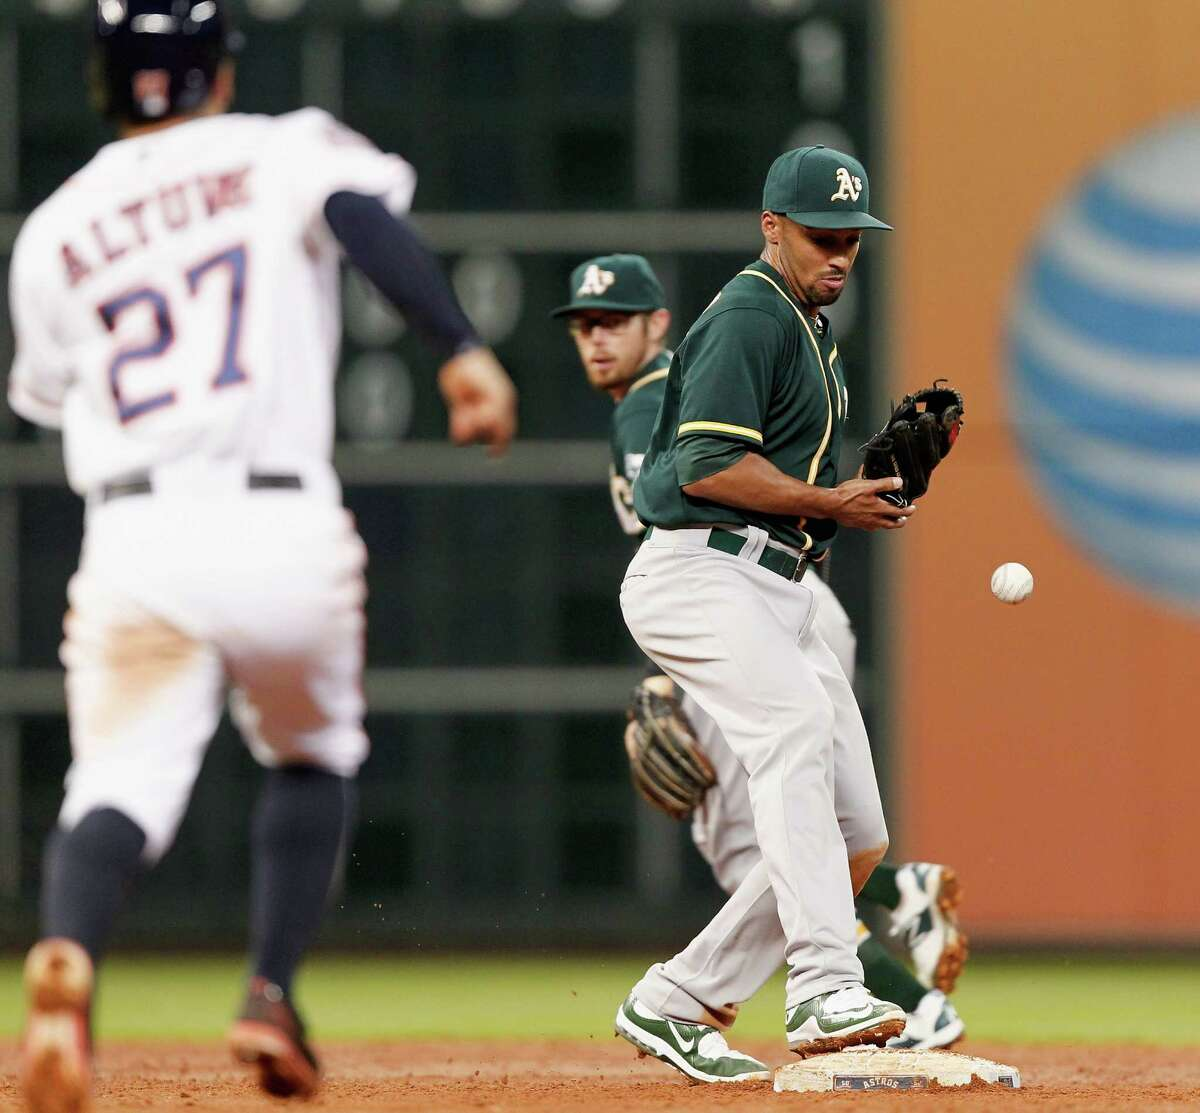 Marcus Semien, who drops a flip from Eric Sogard on a force play against Houston on Monday, has struggled as the everyday shortstop for the Athletics. Ron Washington, the former Texas Rangers manager who has been hired by the A's as a special assistant, will work with Semien. He tutored shortstop Miguel Tejada as the A's infield coach a decade ago.